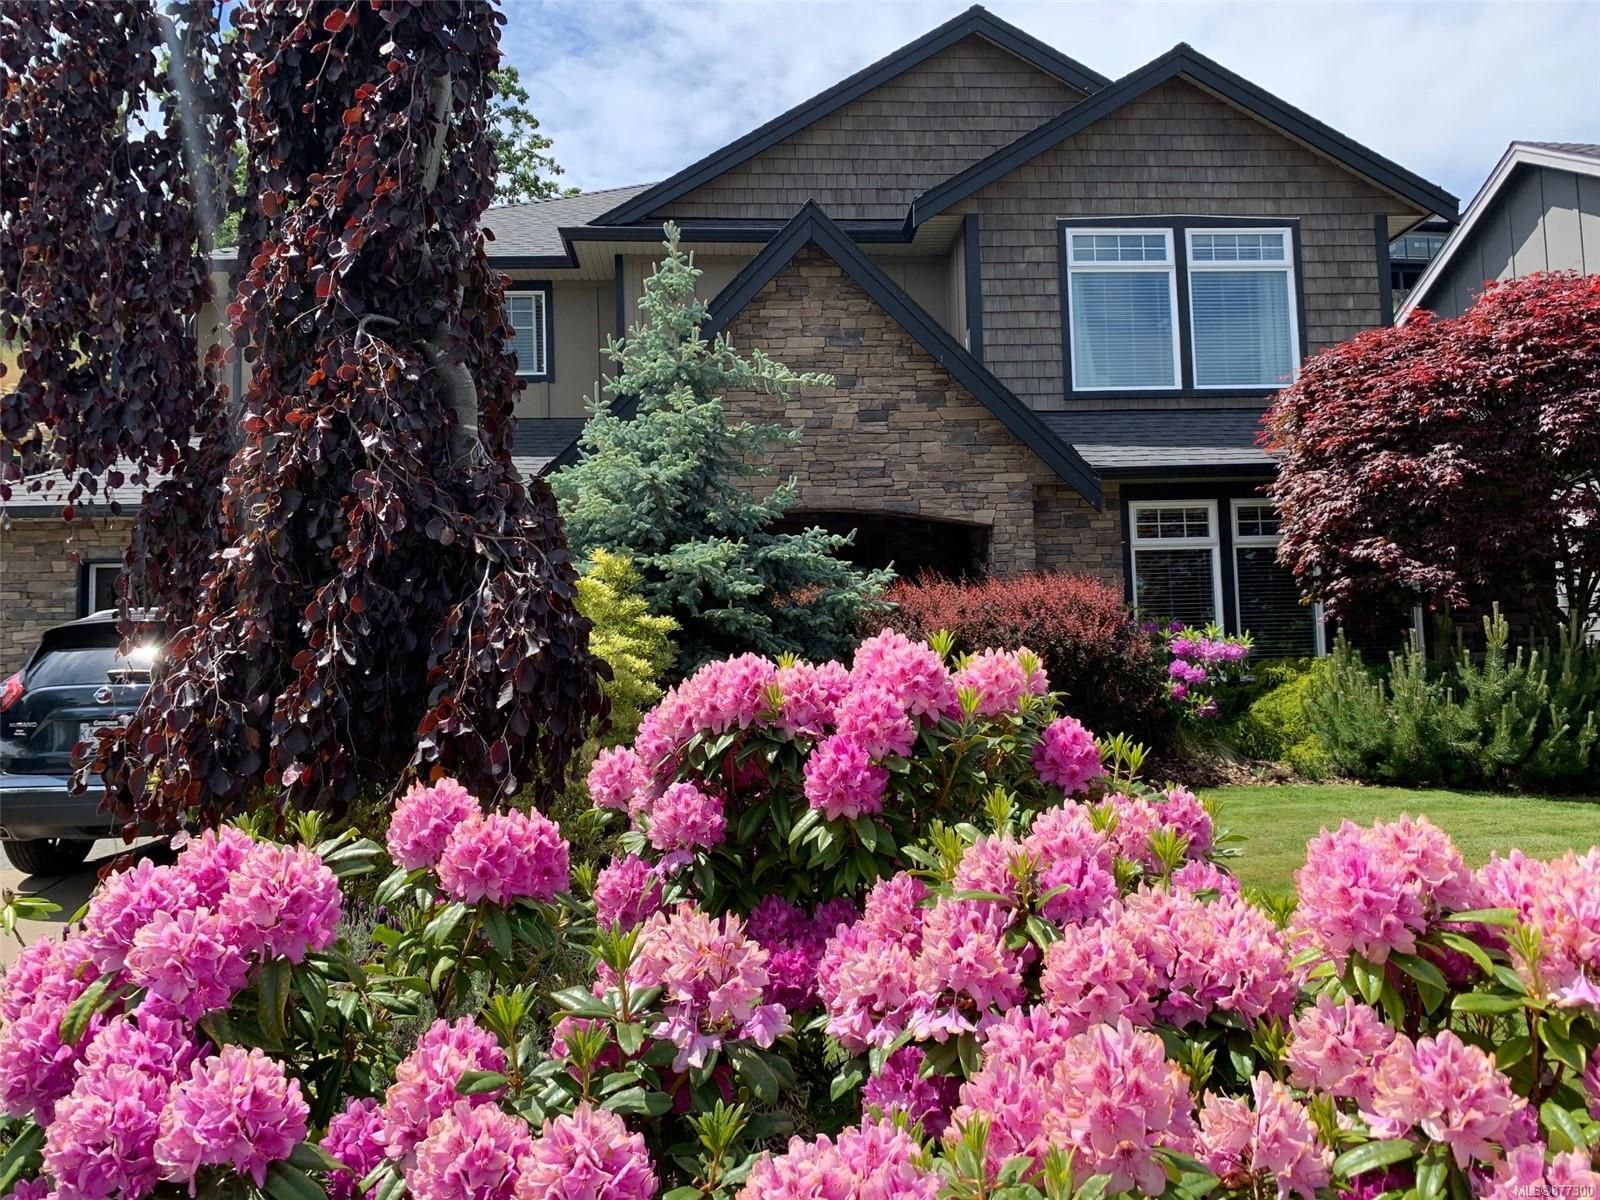 Main Photo: 1404 Grand Forest Close in : La Bear Mountain House for sale (Langford)  : MLS®# 877300